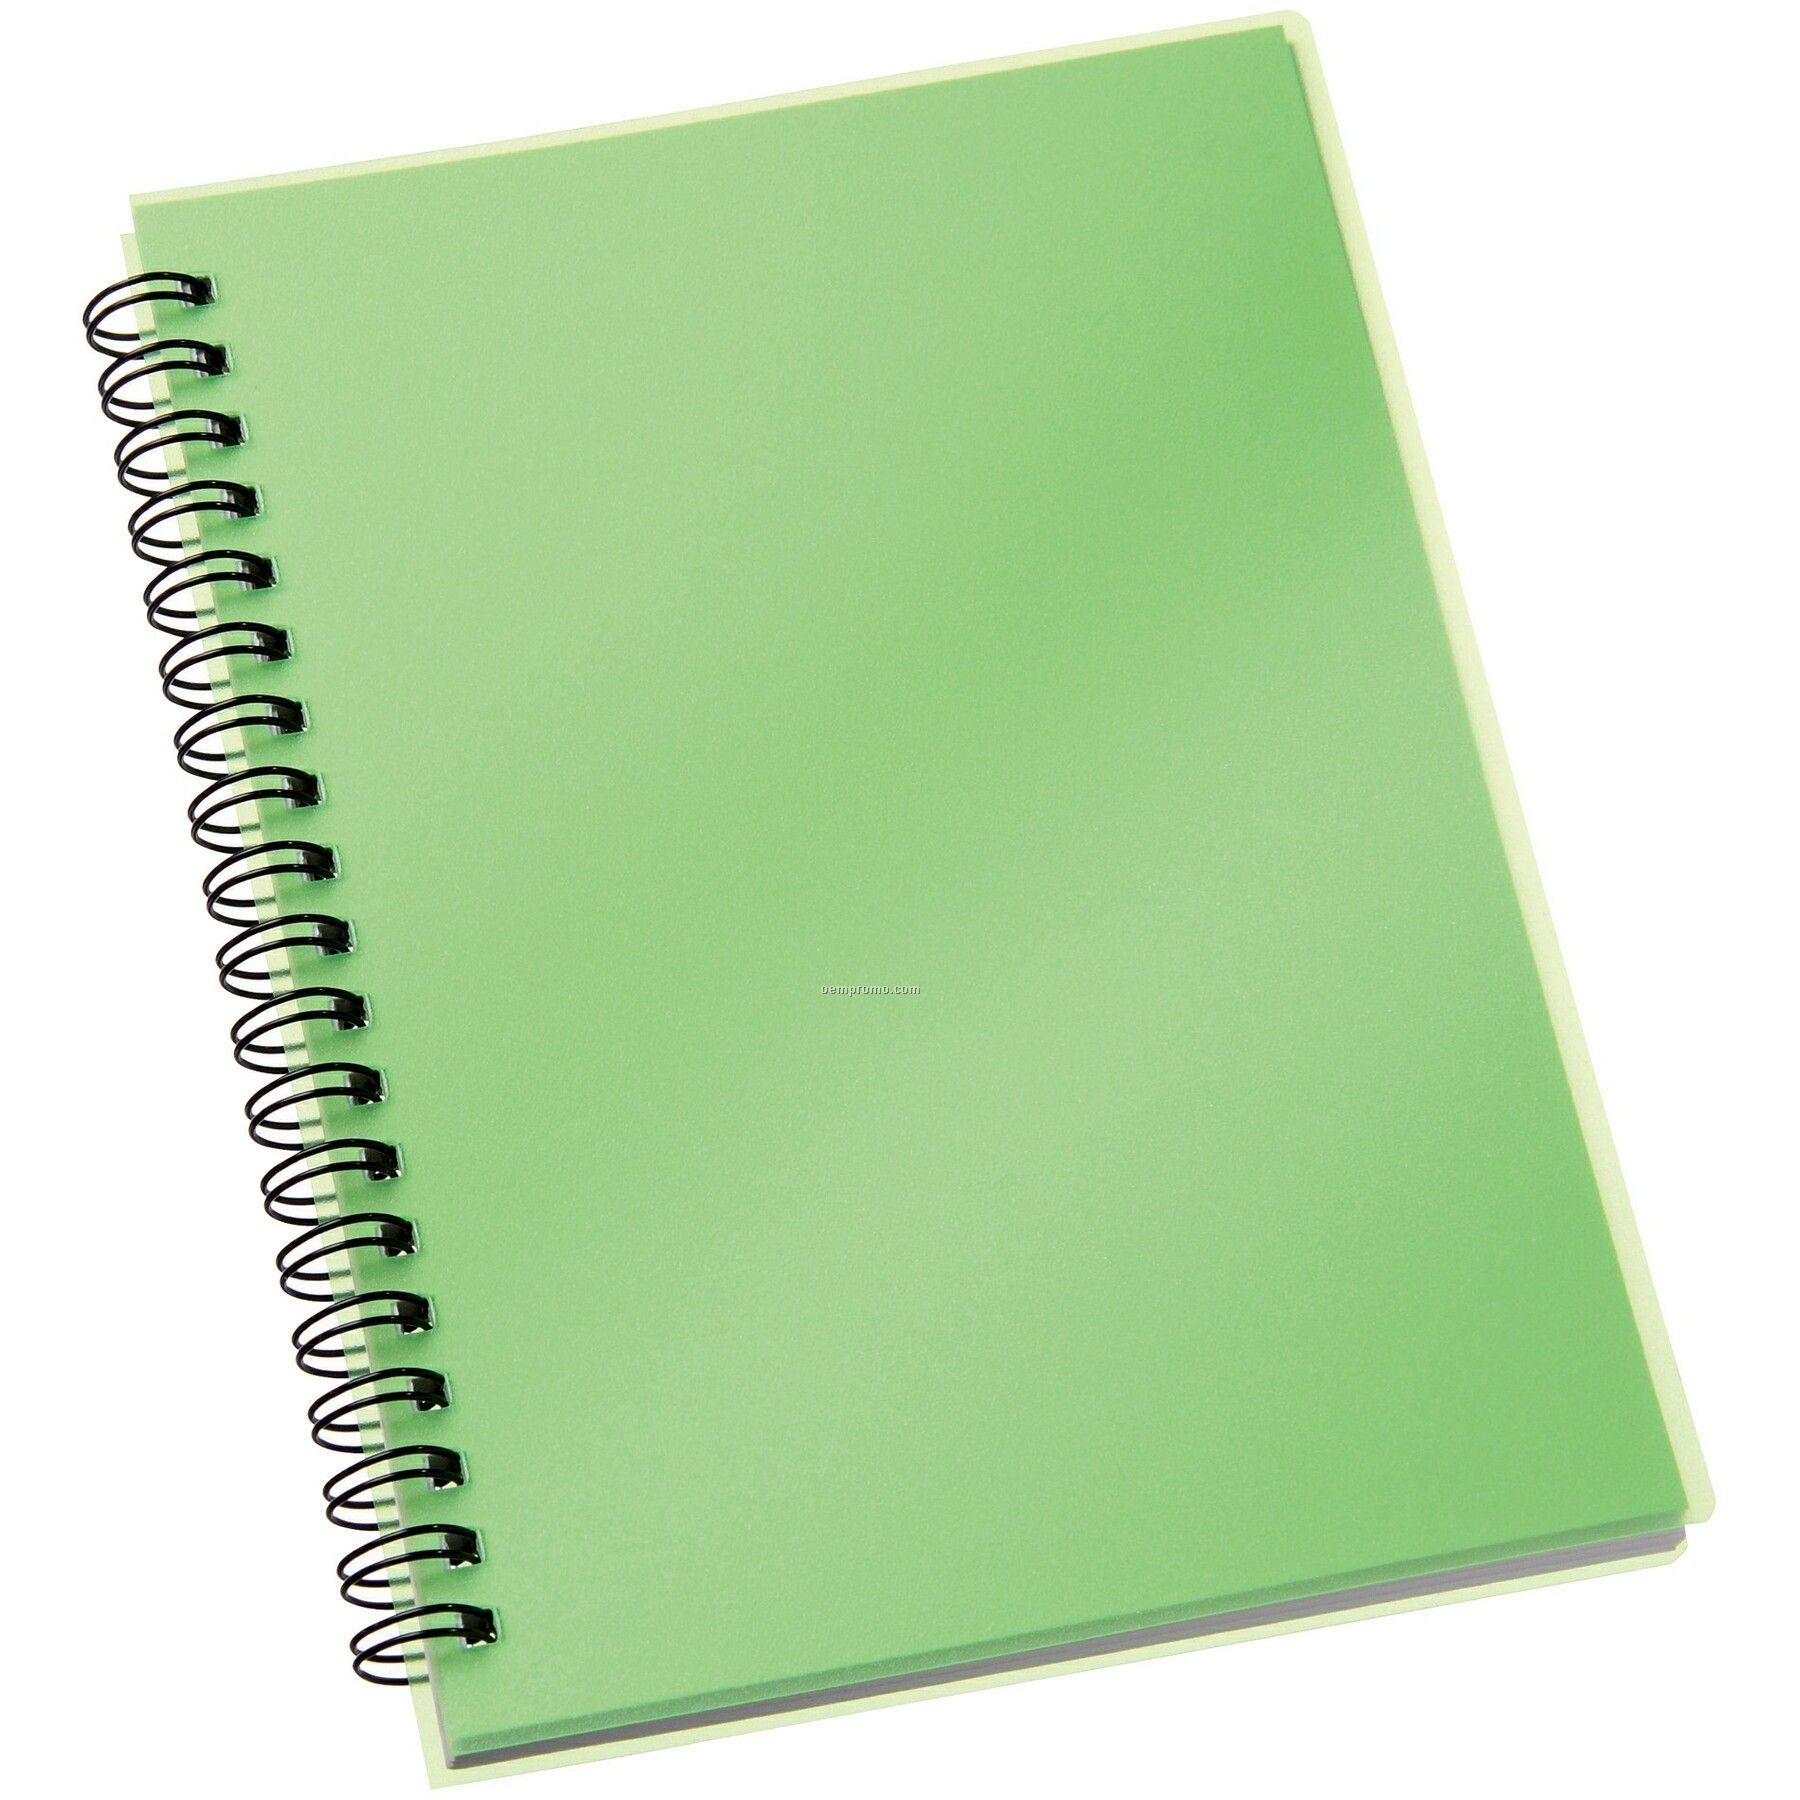 The Duchess Spiral Notebook,China Wholesale The Duchess